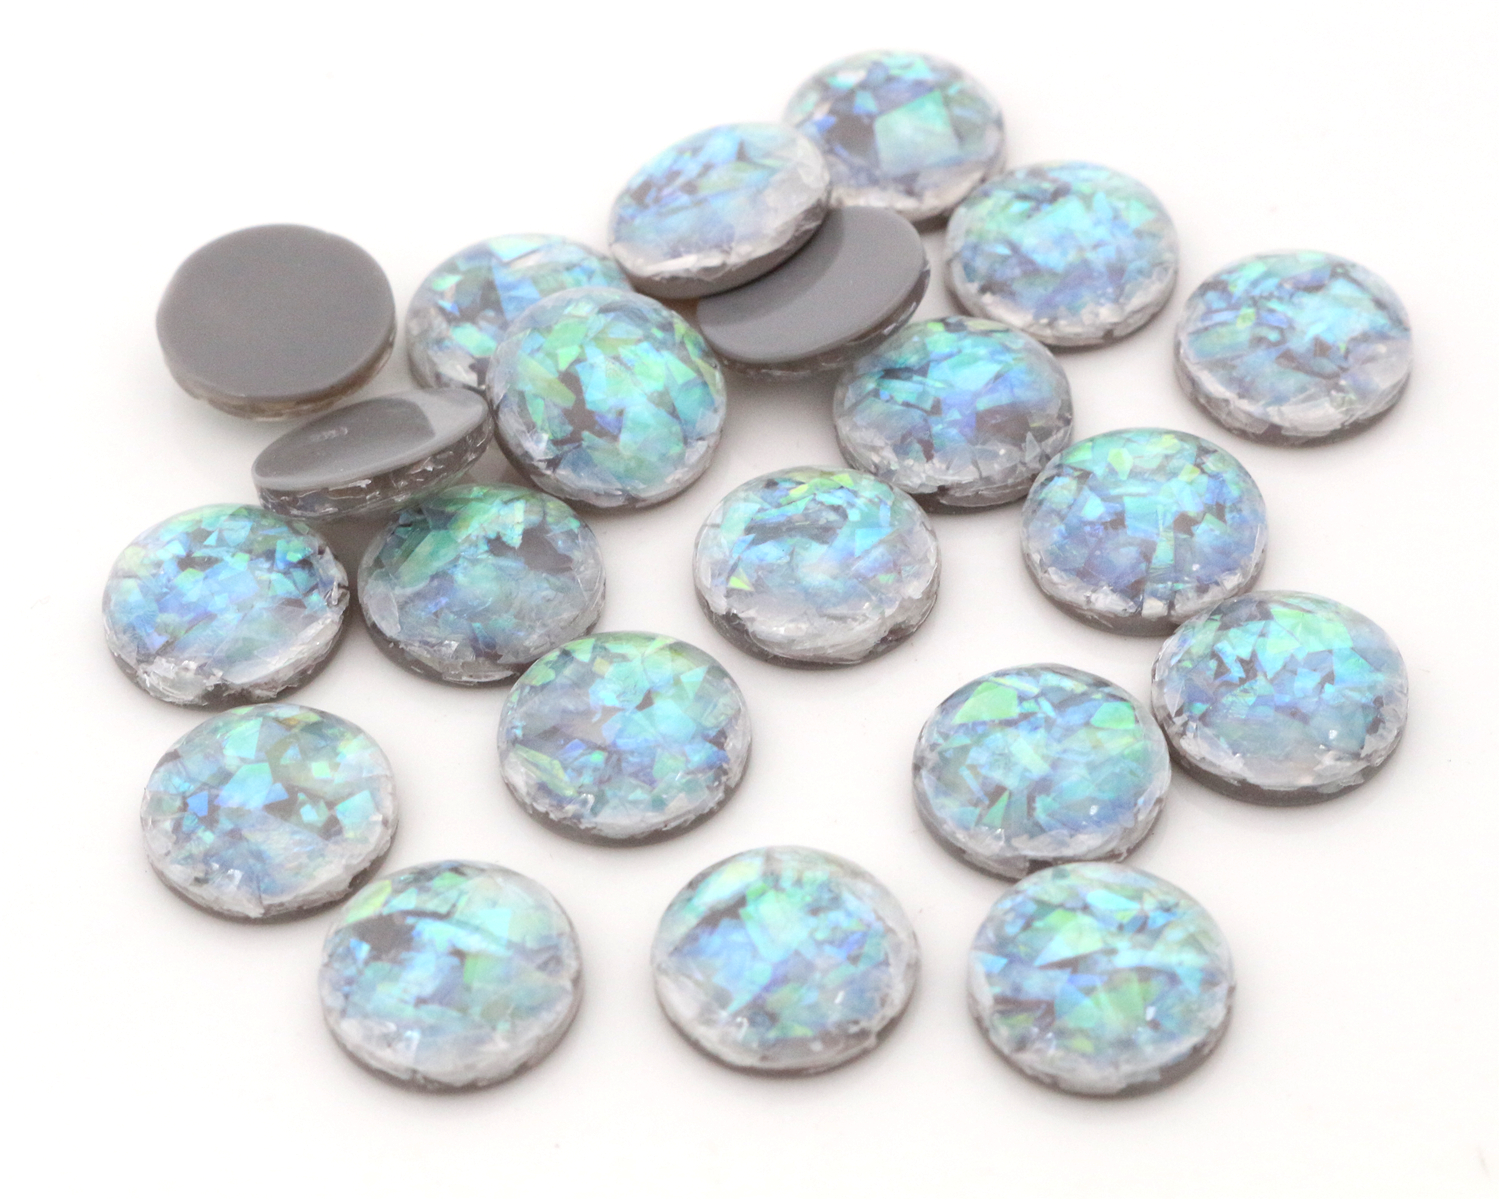 New Fashion 40pcs 12mm Gray Colors Built-in metal foil Flat back Resin Cabochons Cameo-V3-10New Fashion 40pcs 12mm Gray Colors Built-in metal foil Flat back Resin Cabochons Cameo-V3-10